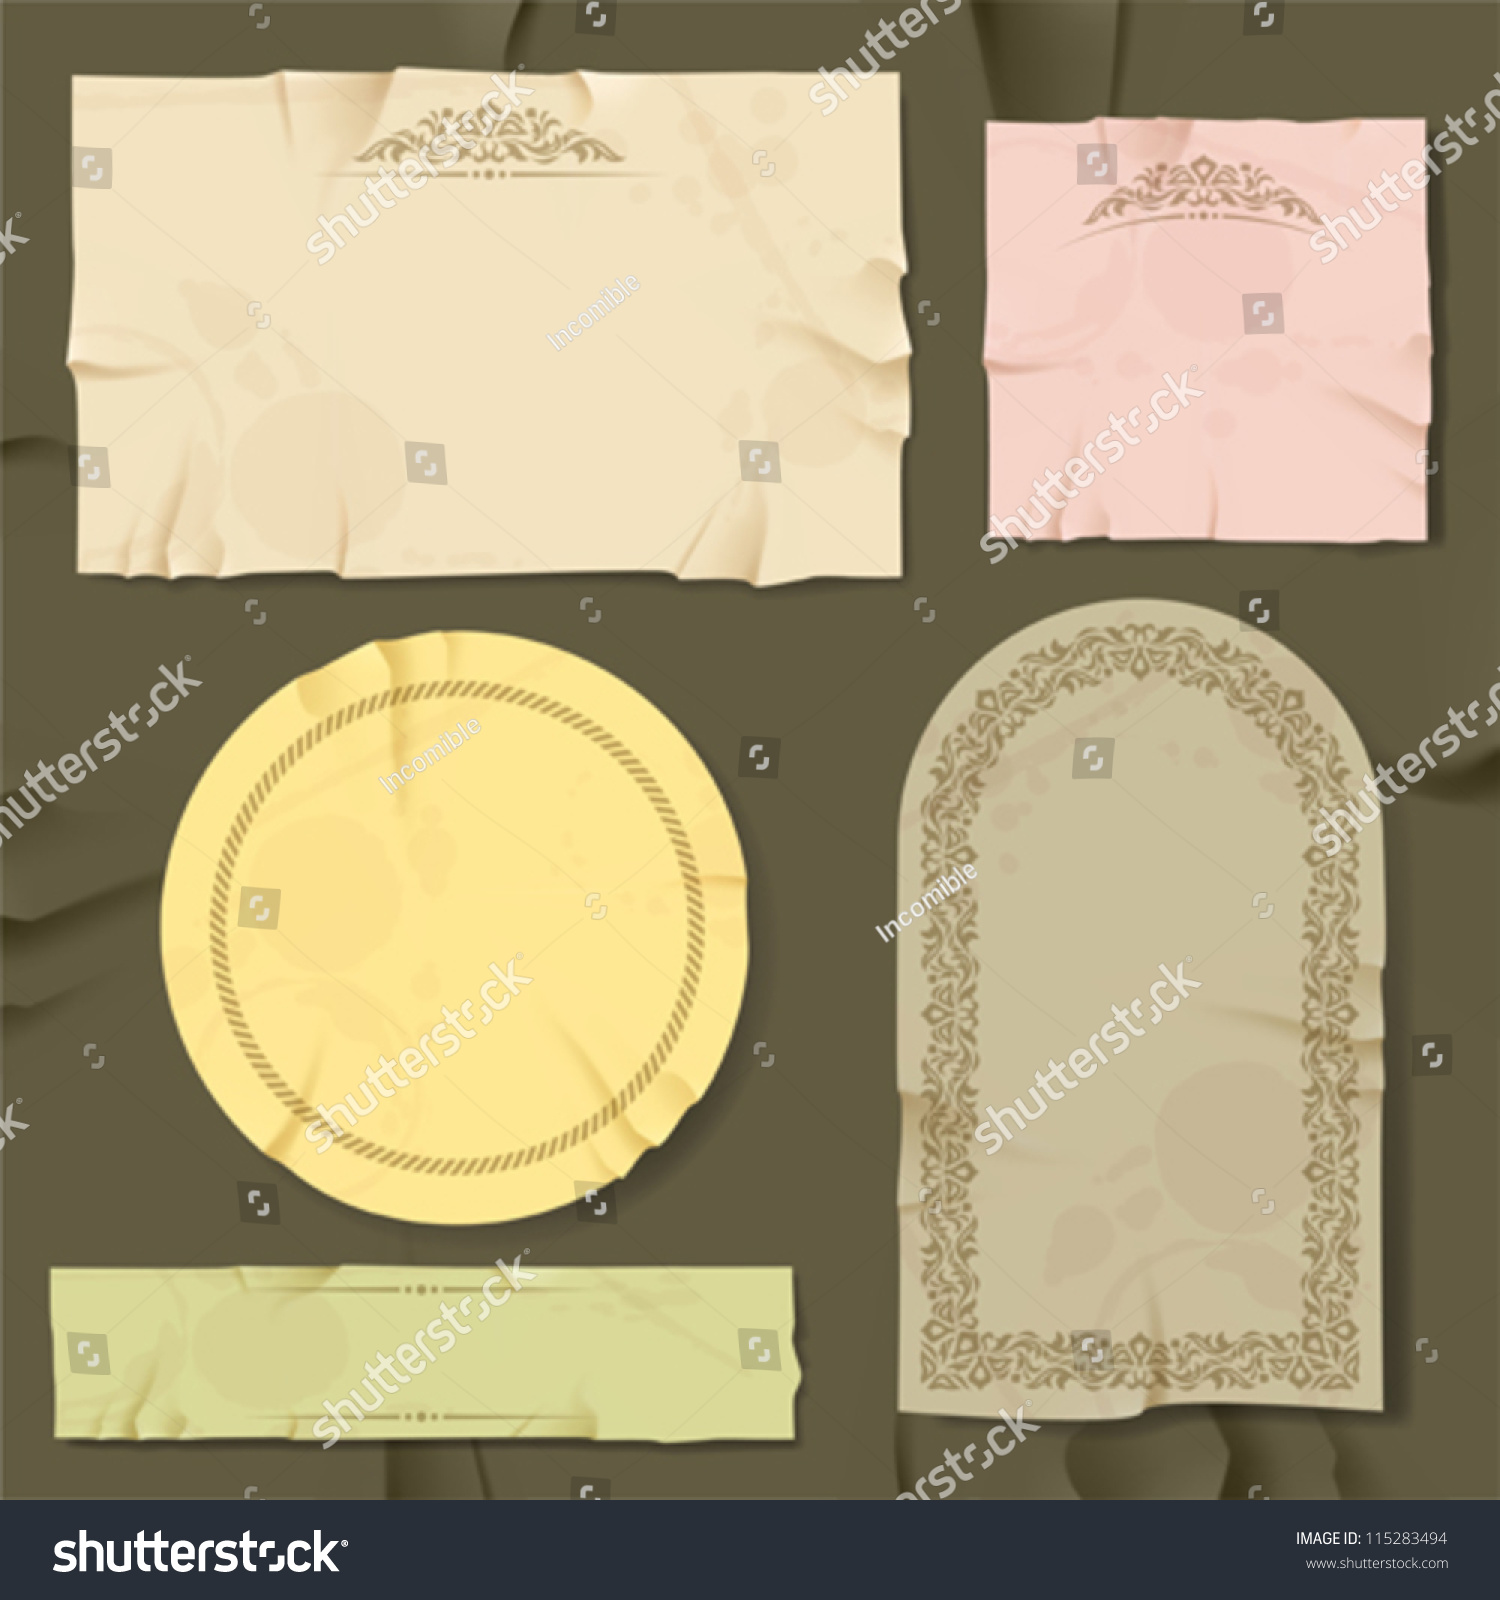 vintage retro old paper different objects stock vector 115283494 shutterstock. Black Bedroom Furniture Sets. Home Design Ideas